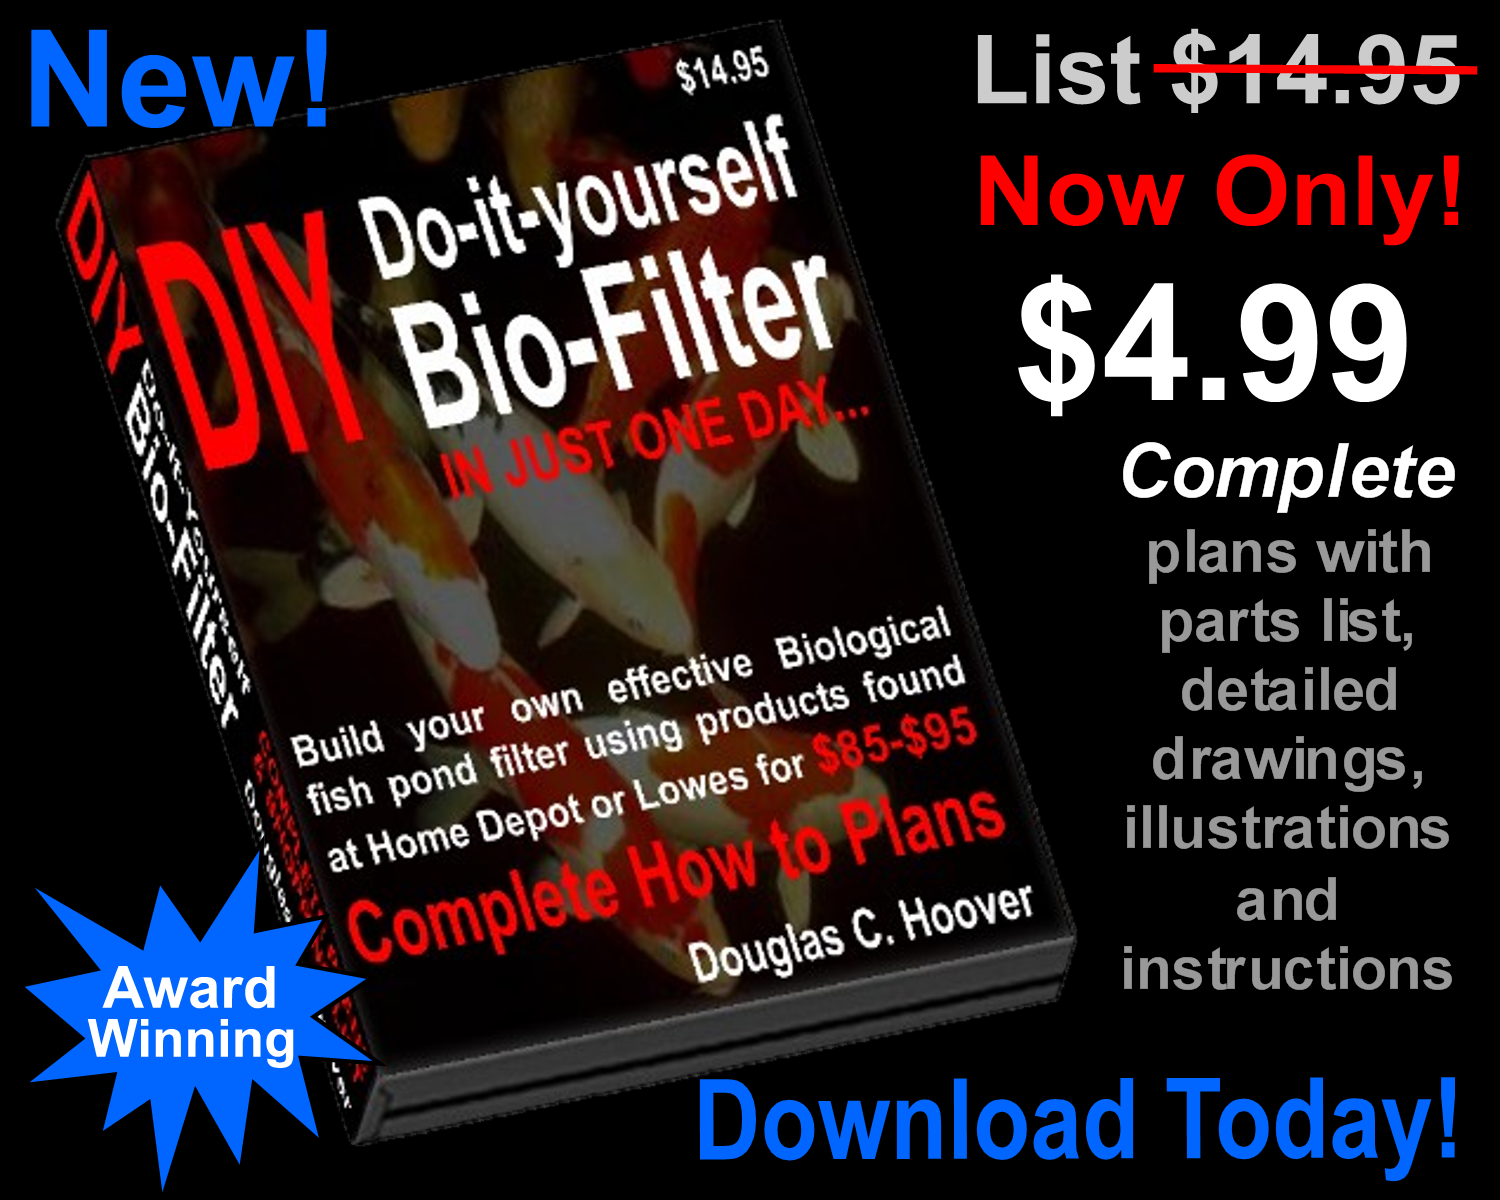 Diy bio filter do it yourself biological pond filter do it yourself biological pond filter solutioingenieria Image collections